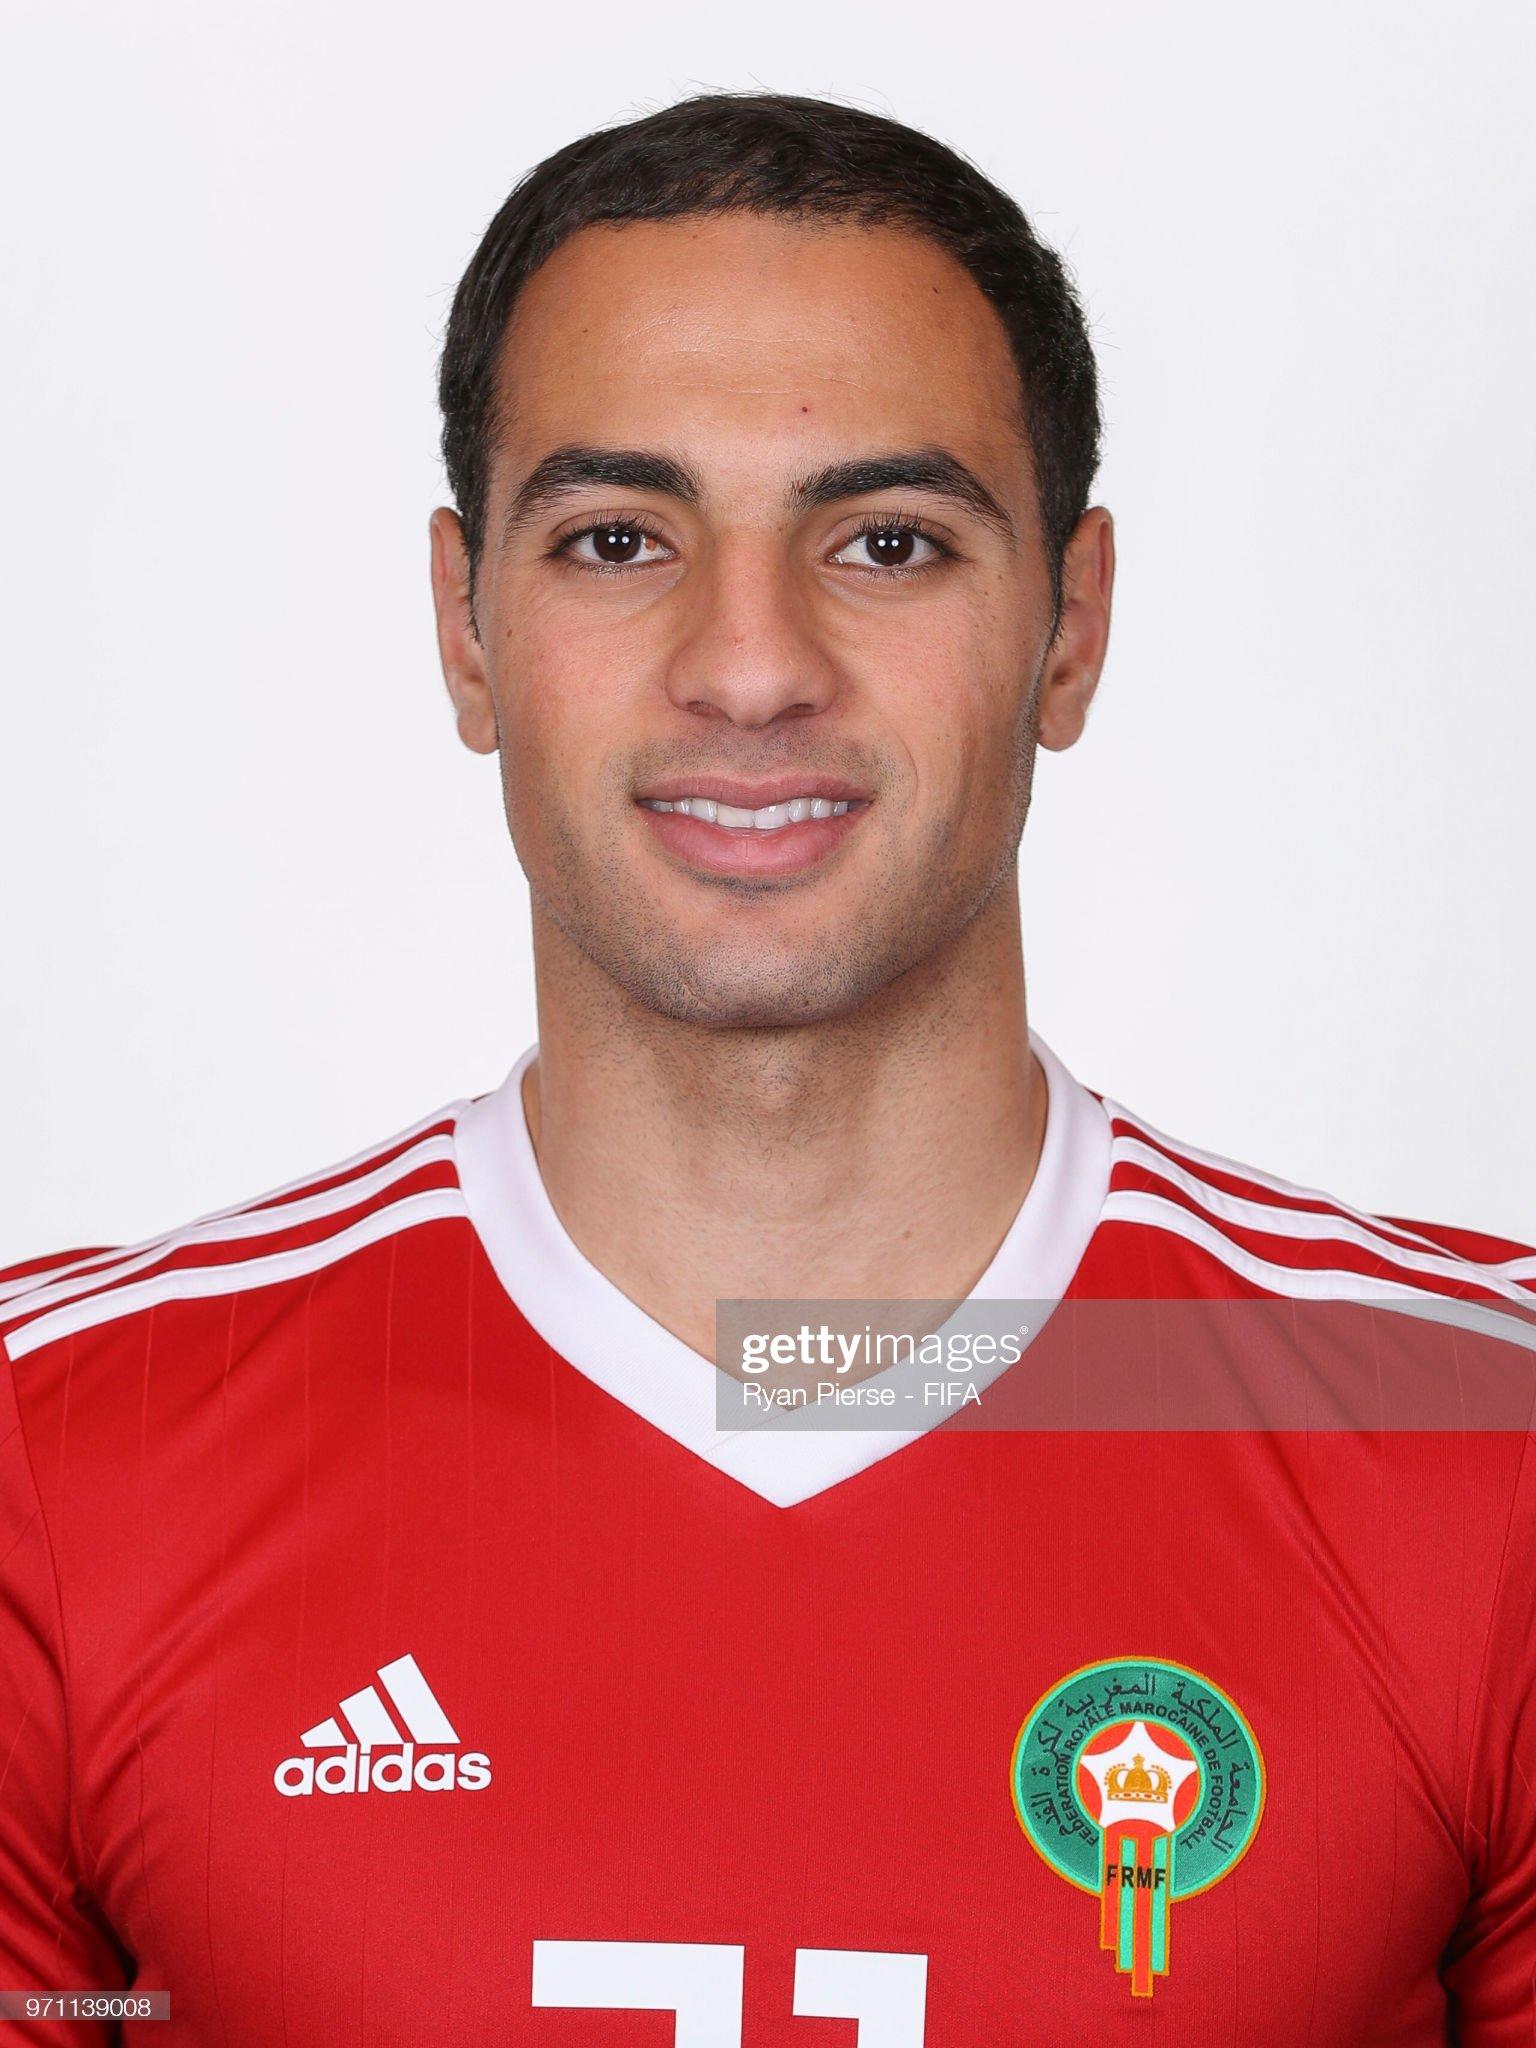 Norteafricanos Sofyan-amrabat-of-morocco-poses-during-the-official-fifa-world-cup-picture-id971139008?s=2048x2048